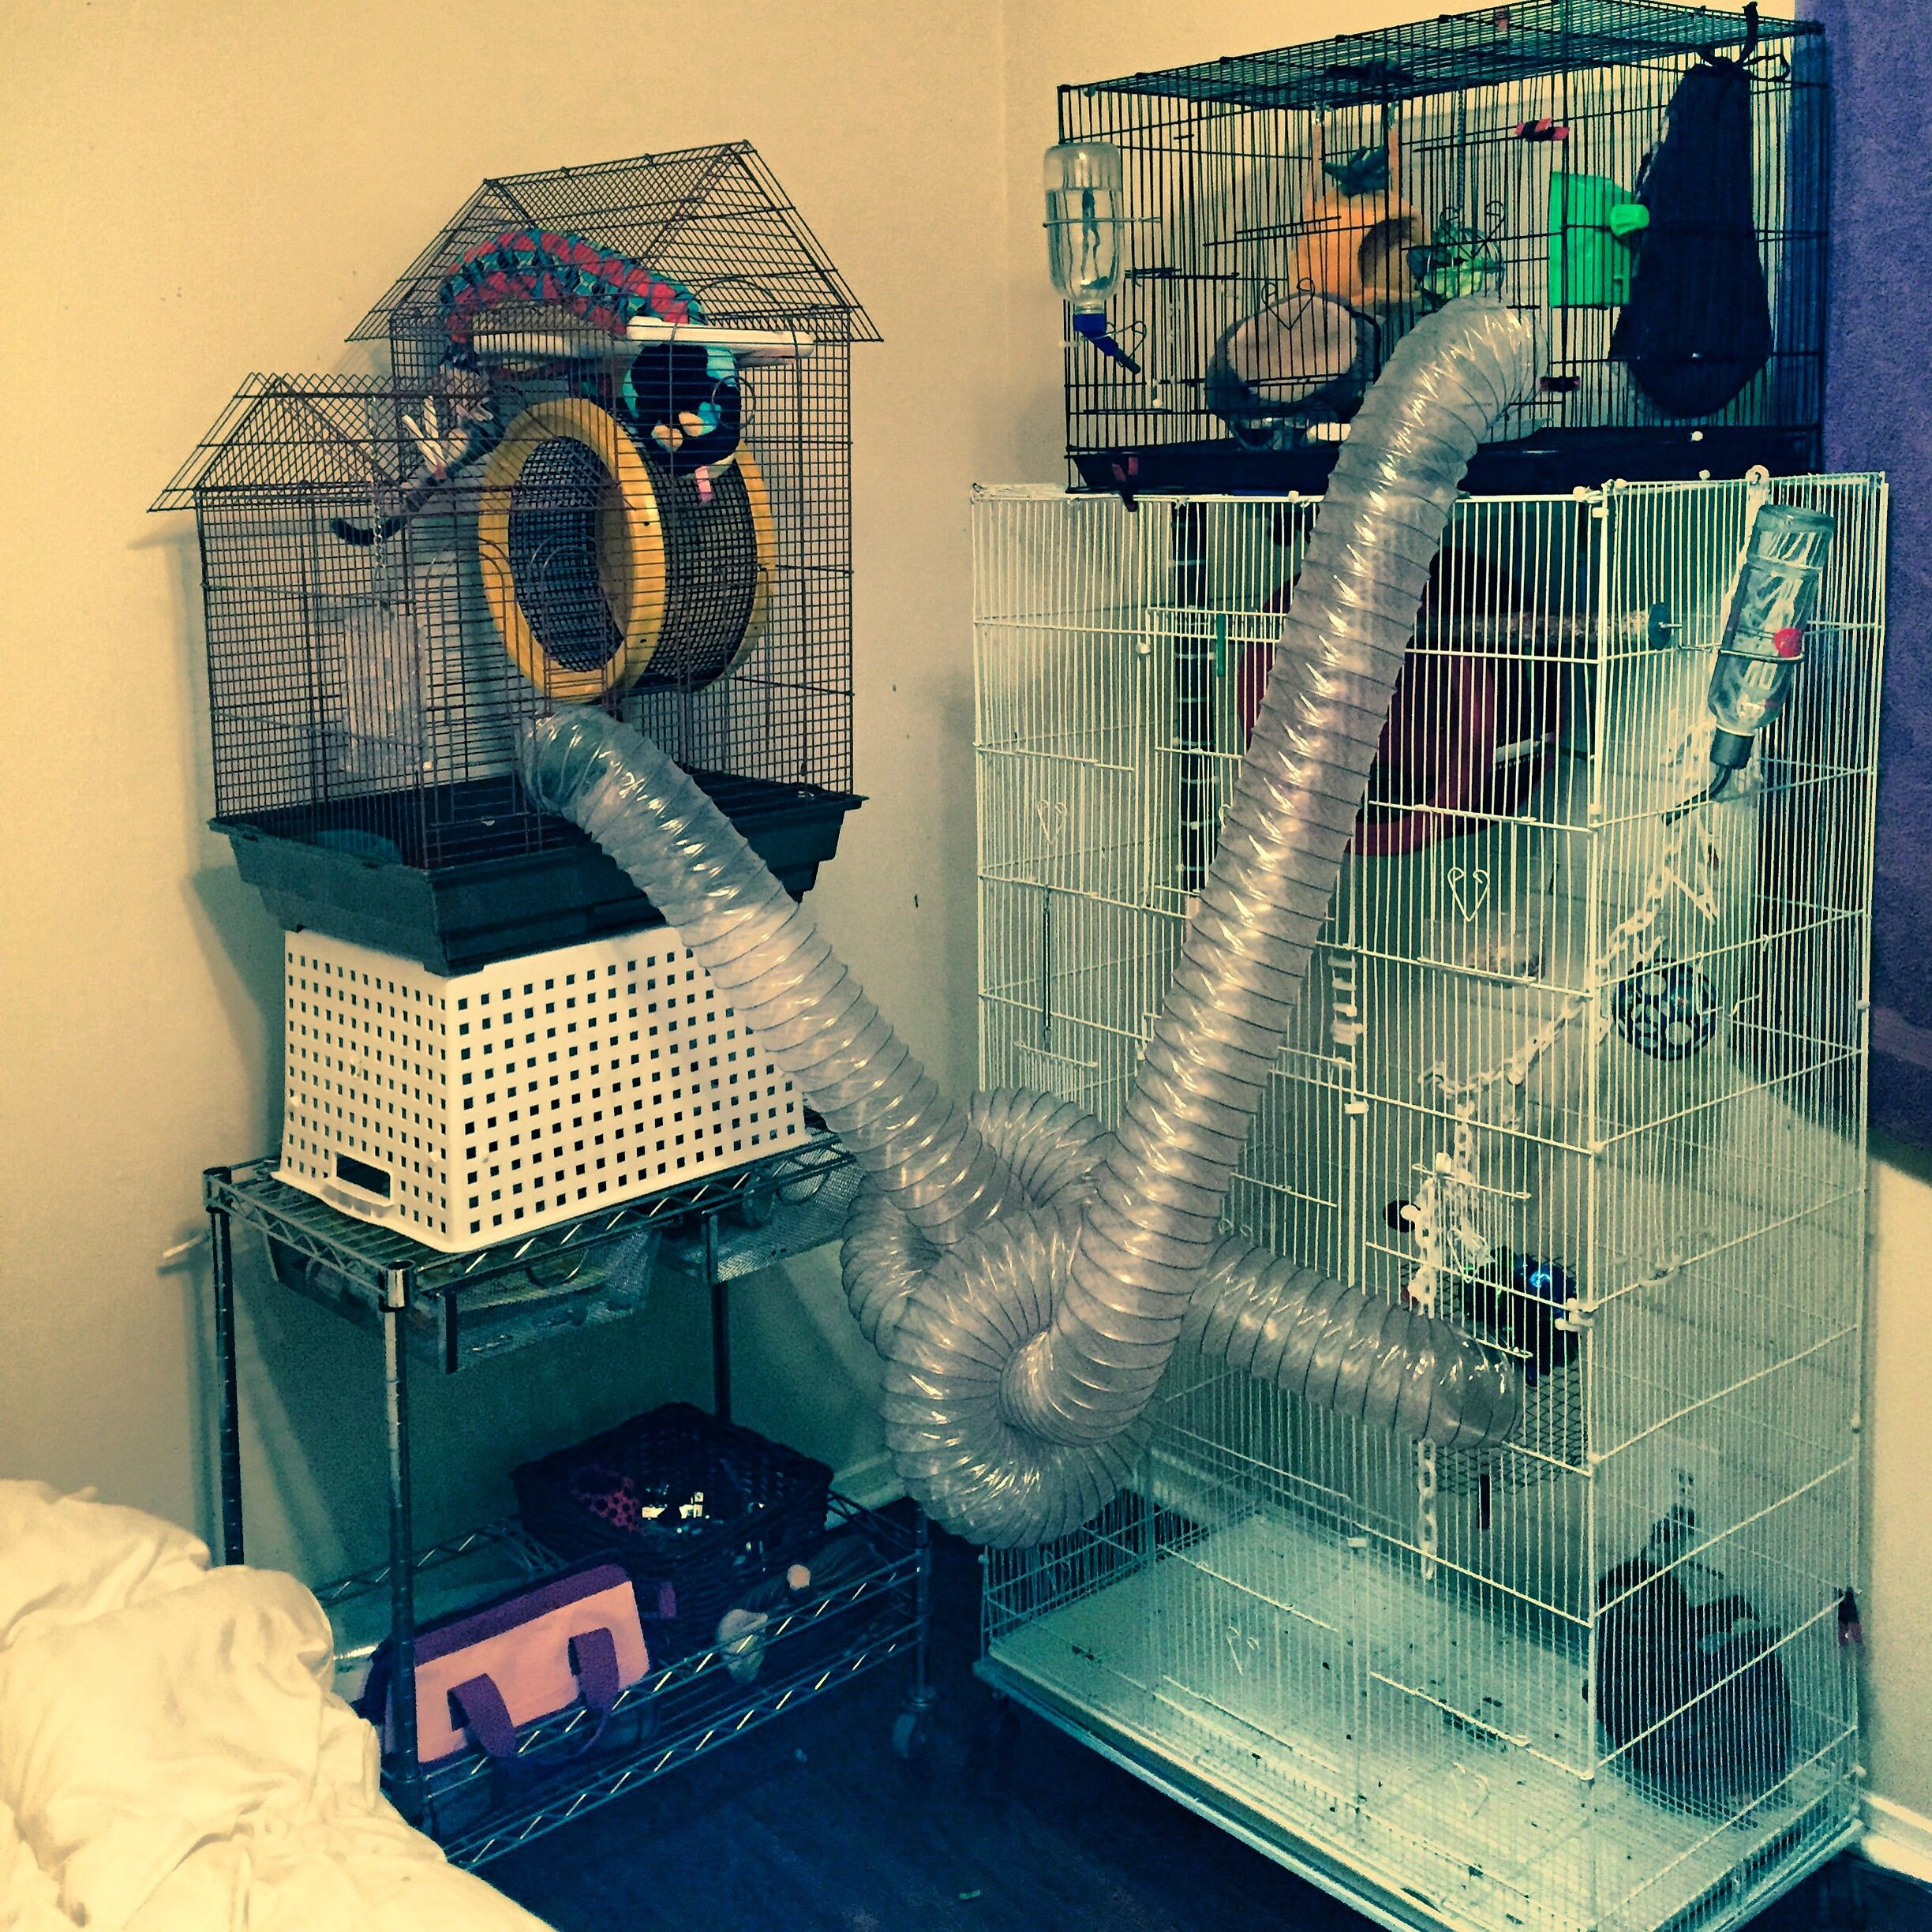 New Sugar Glider Cage Setup I Try To Change The Tunnels Around